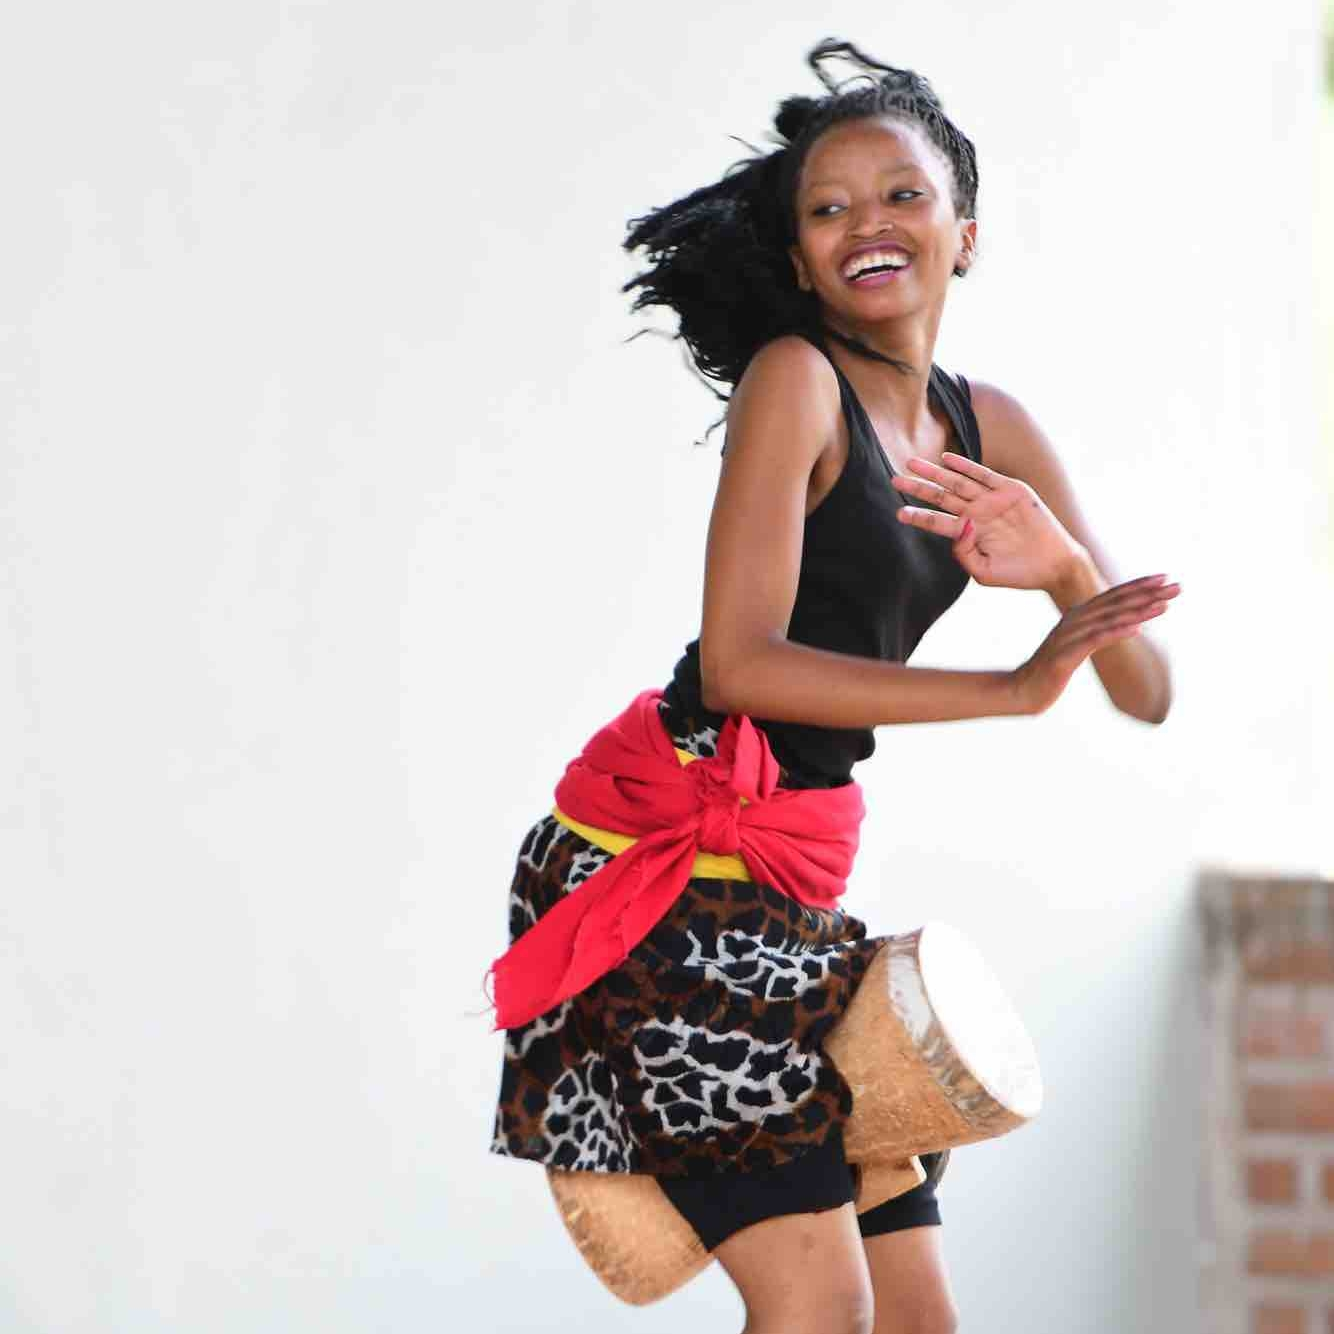 REHEMA NDIMIRA - Rehema began dancing while studying at Uraki secondary school where she achieved a certificate in music. Before joining CAC she performed with the Makumira University Music Department. As well as dancing she teaches music theory at Uraki Secondary. Her highlight with CAC has been performing at Sauti za Busara in 2017 and 2018.